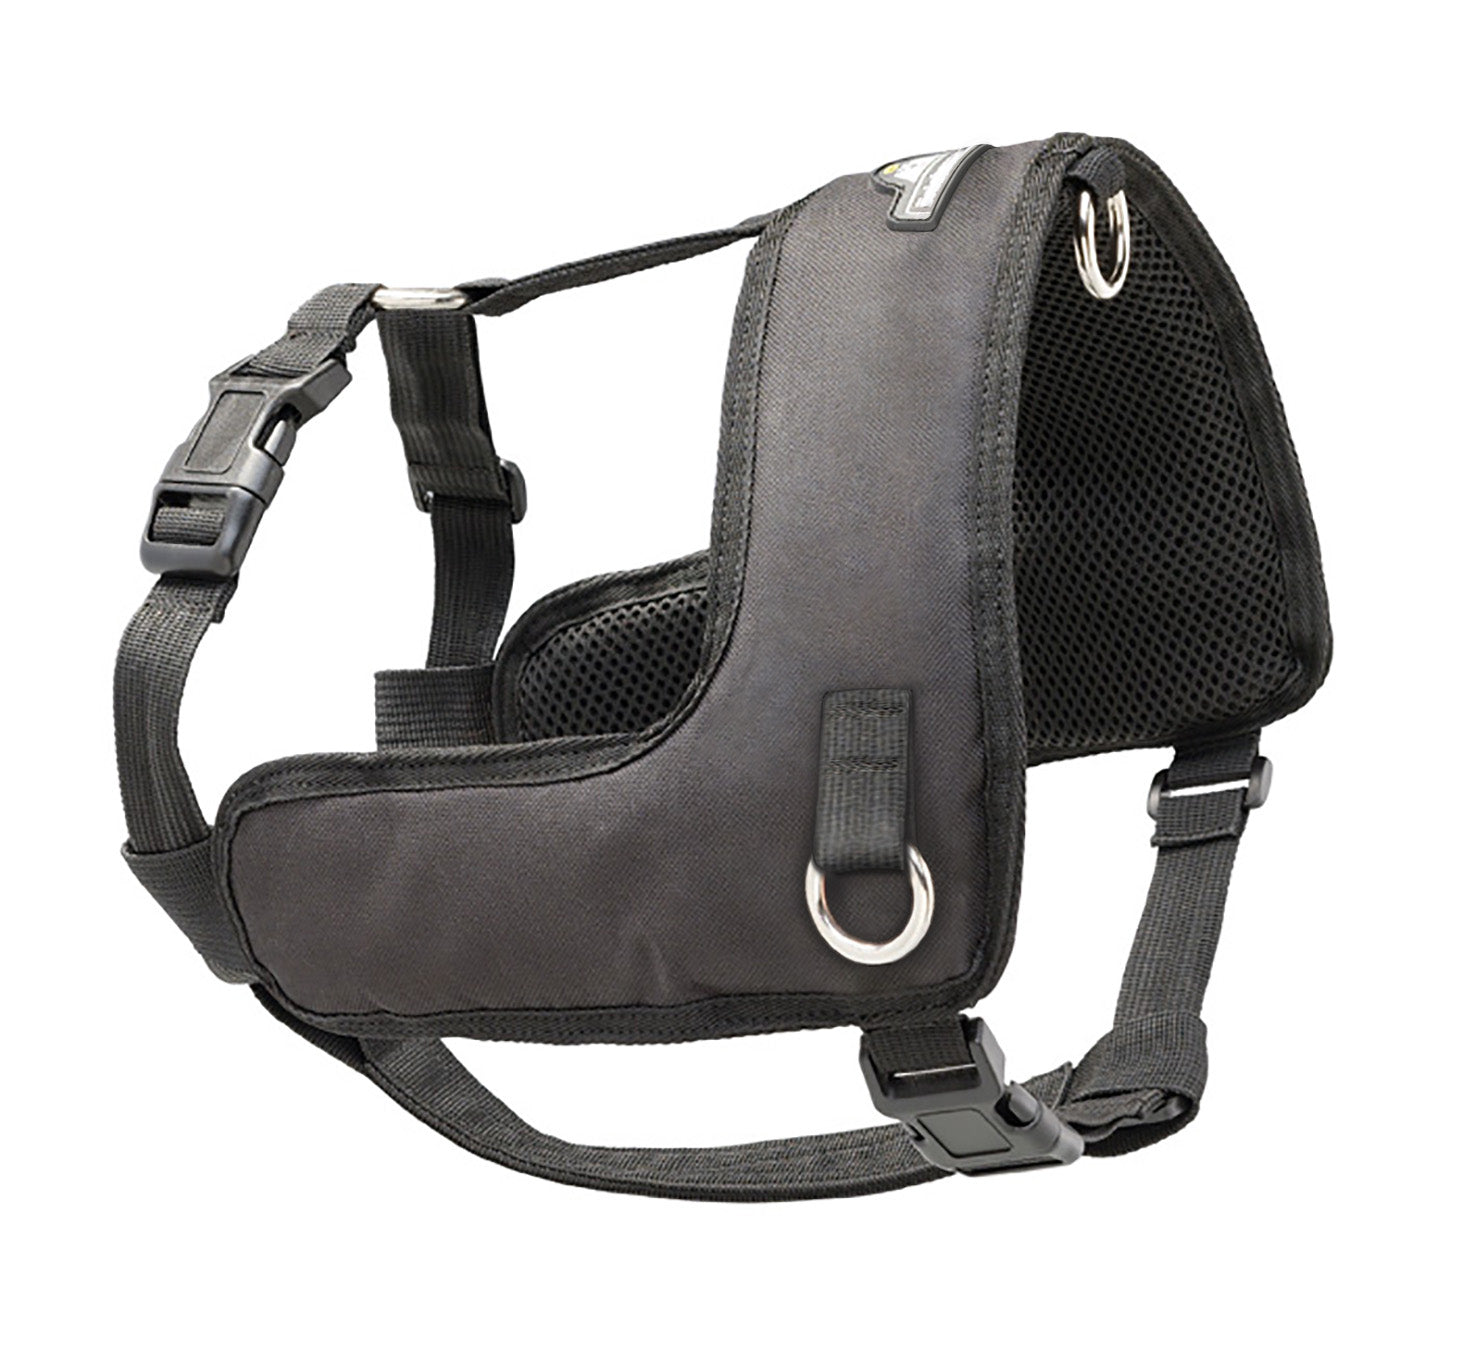 Halo Harness (Small)